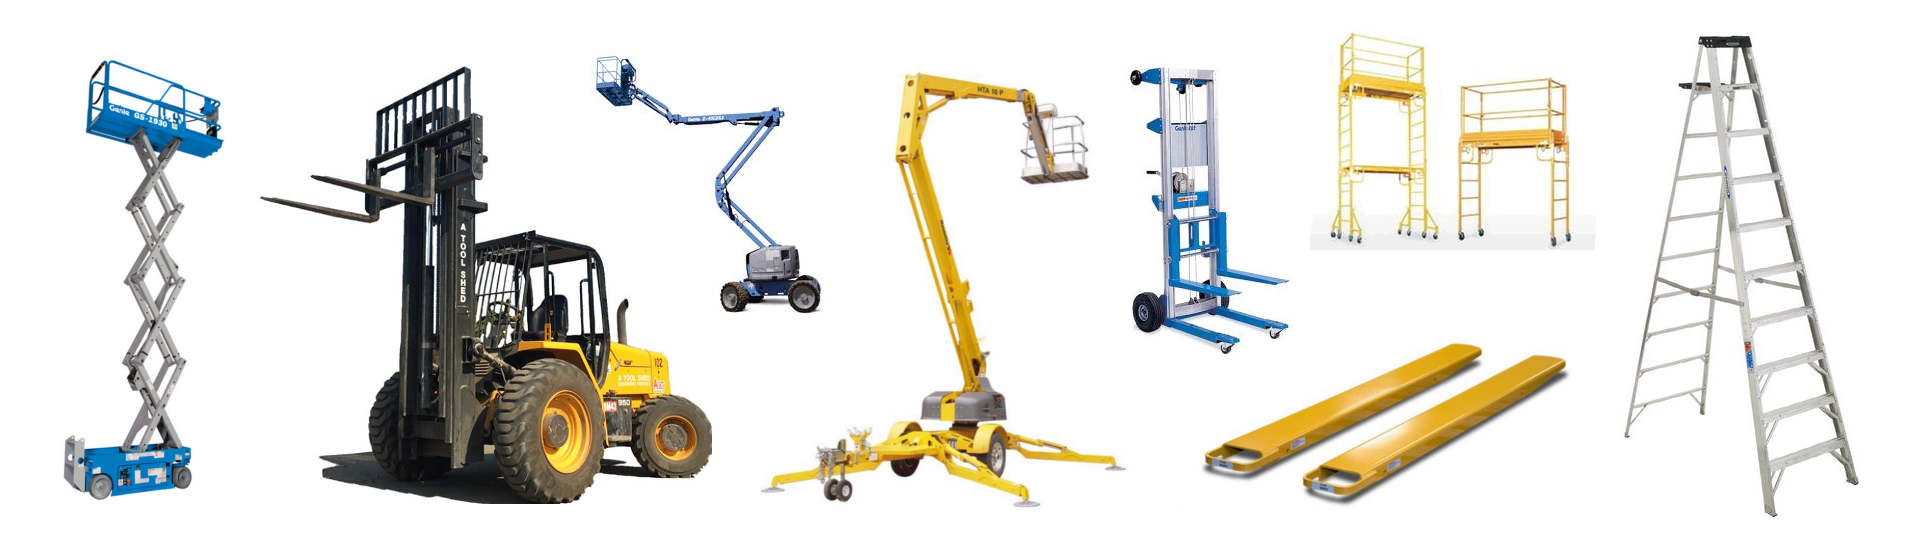 Homeowner Equipment Rentals in Santa Clara County & the Silicon Valley